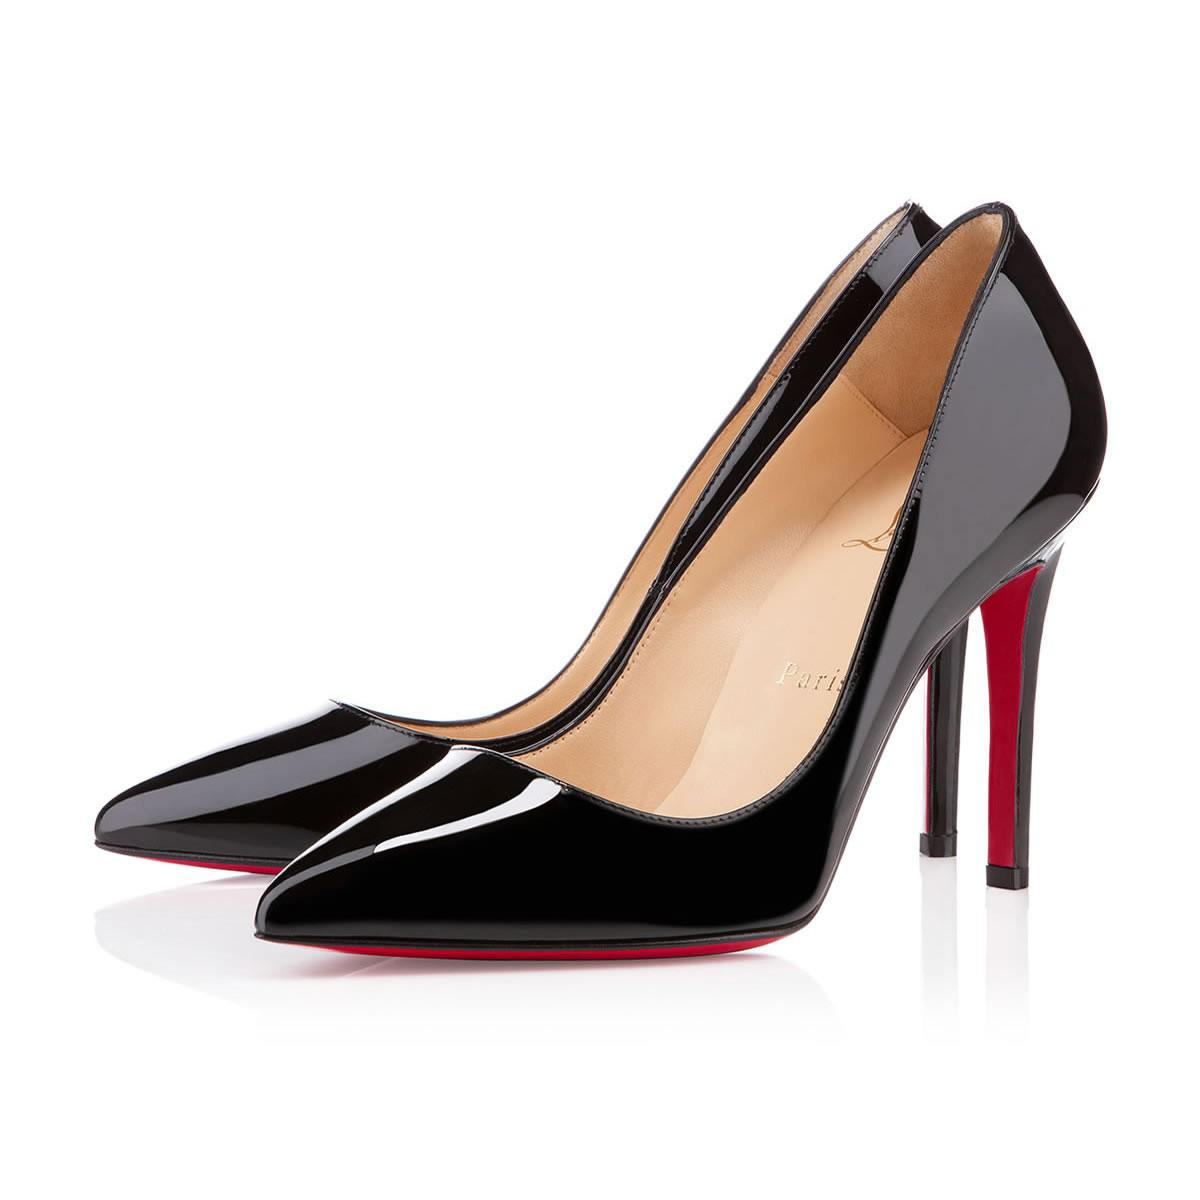 6237930208f Christian Louboutin Pigalle Patent in Black - Lyst